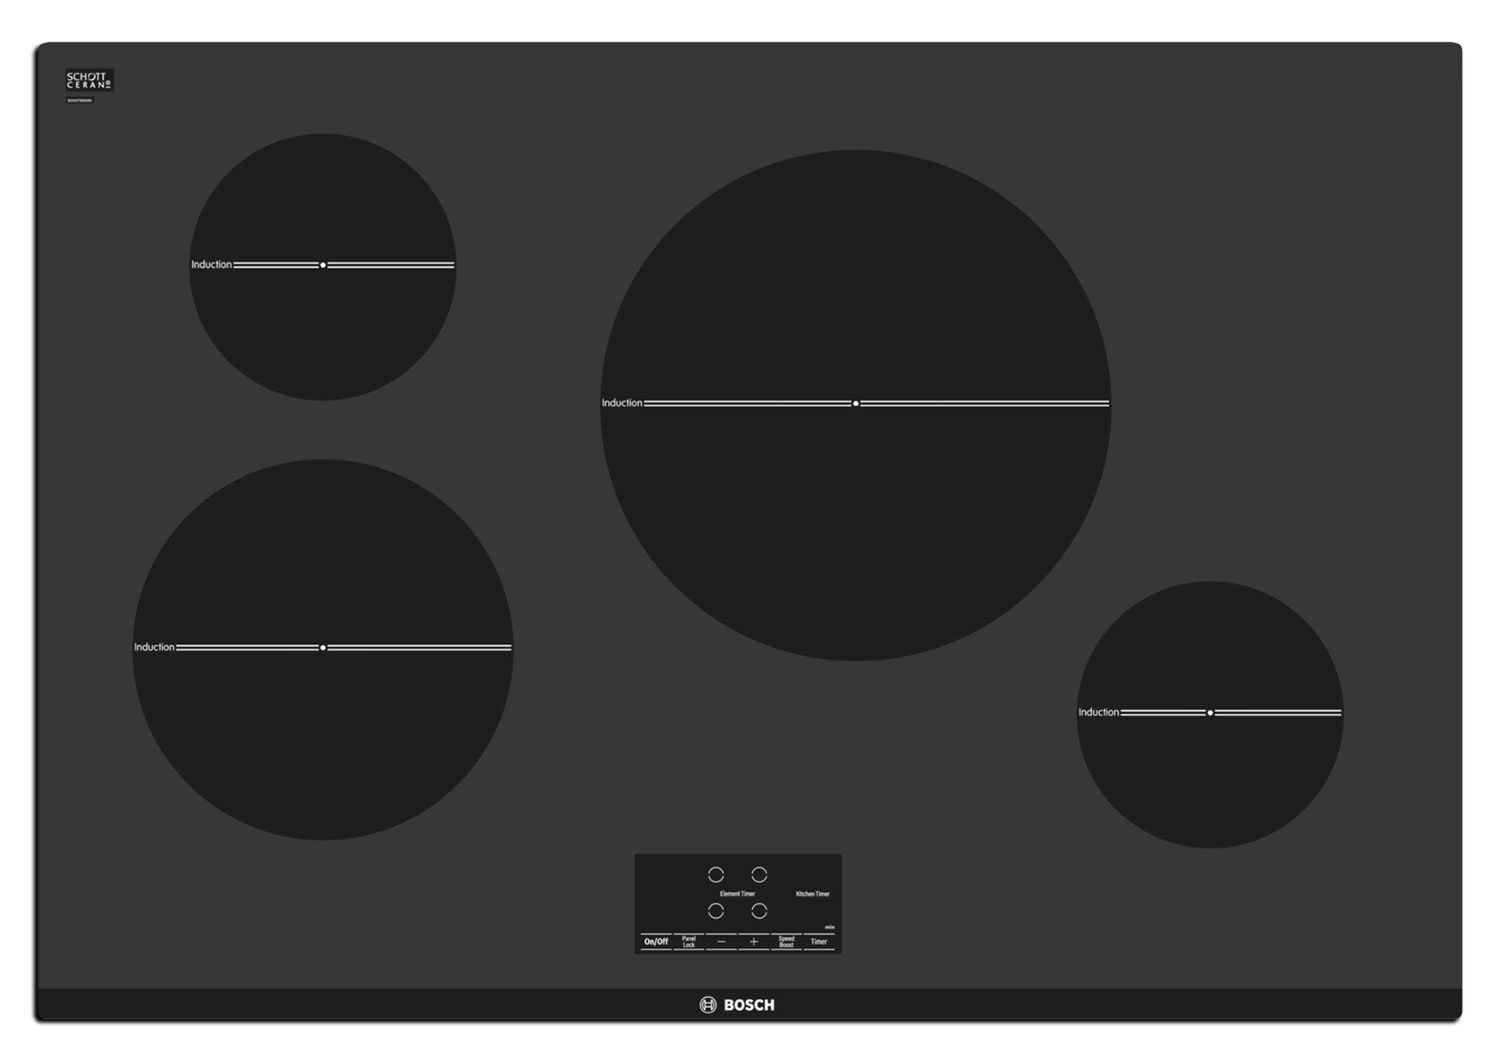 Bosch Black Electric Induction Cooktop - NIT5066UC